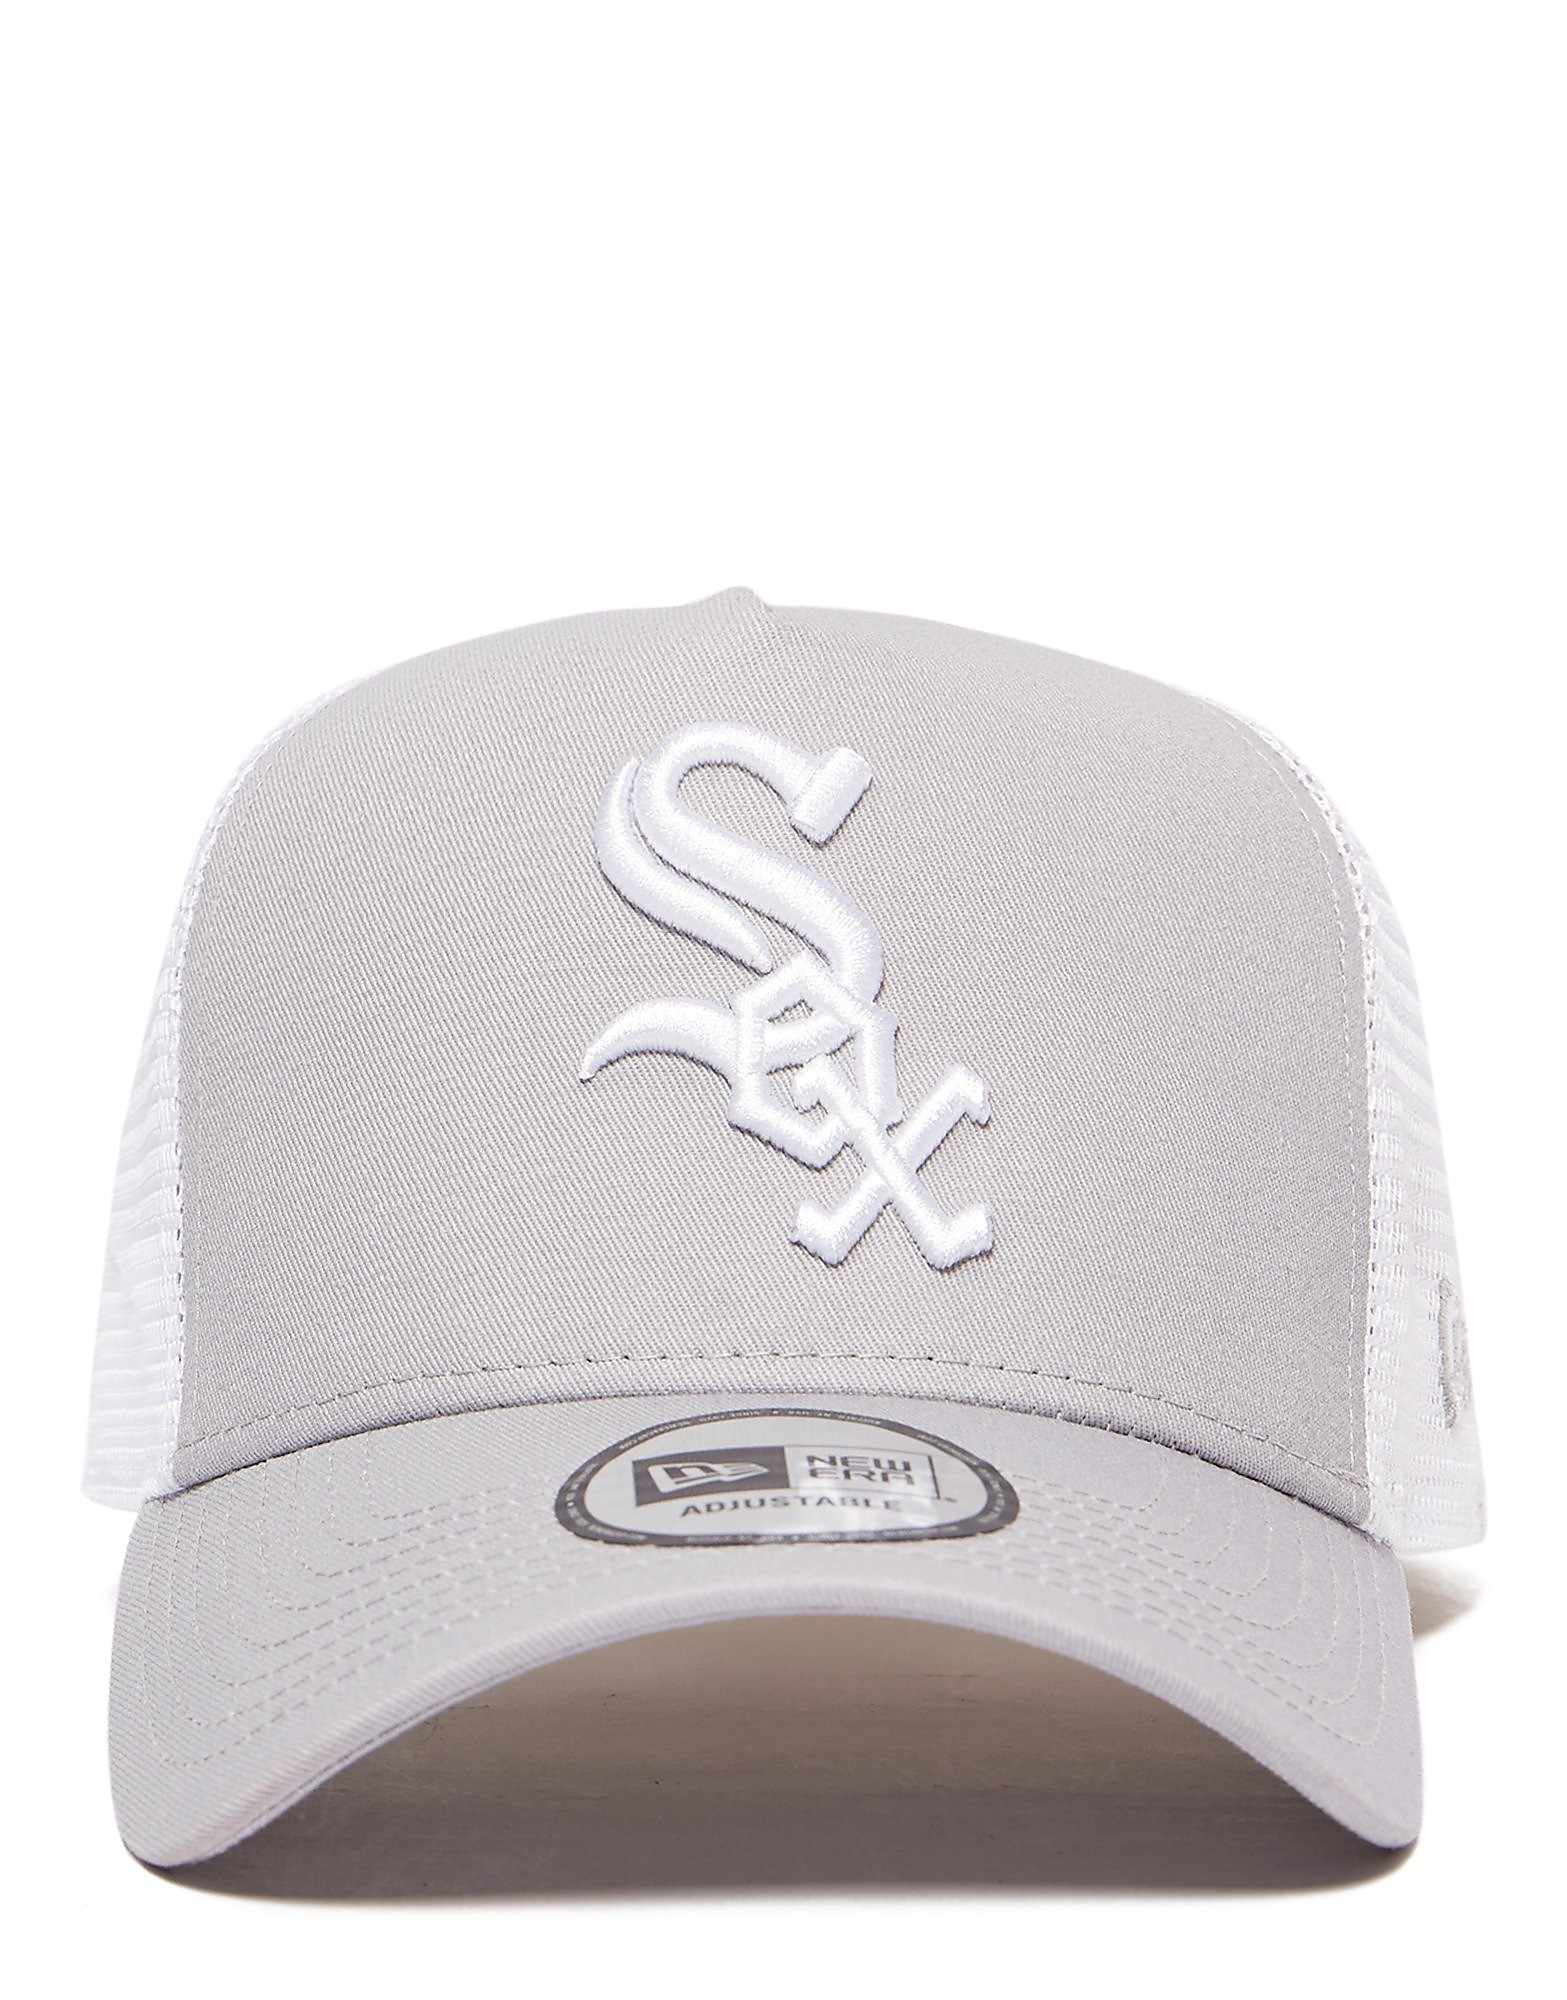 New Era Chicago White Sox Trucker Cap